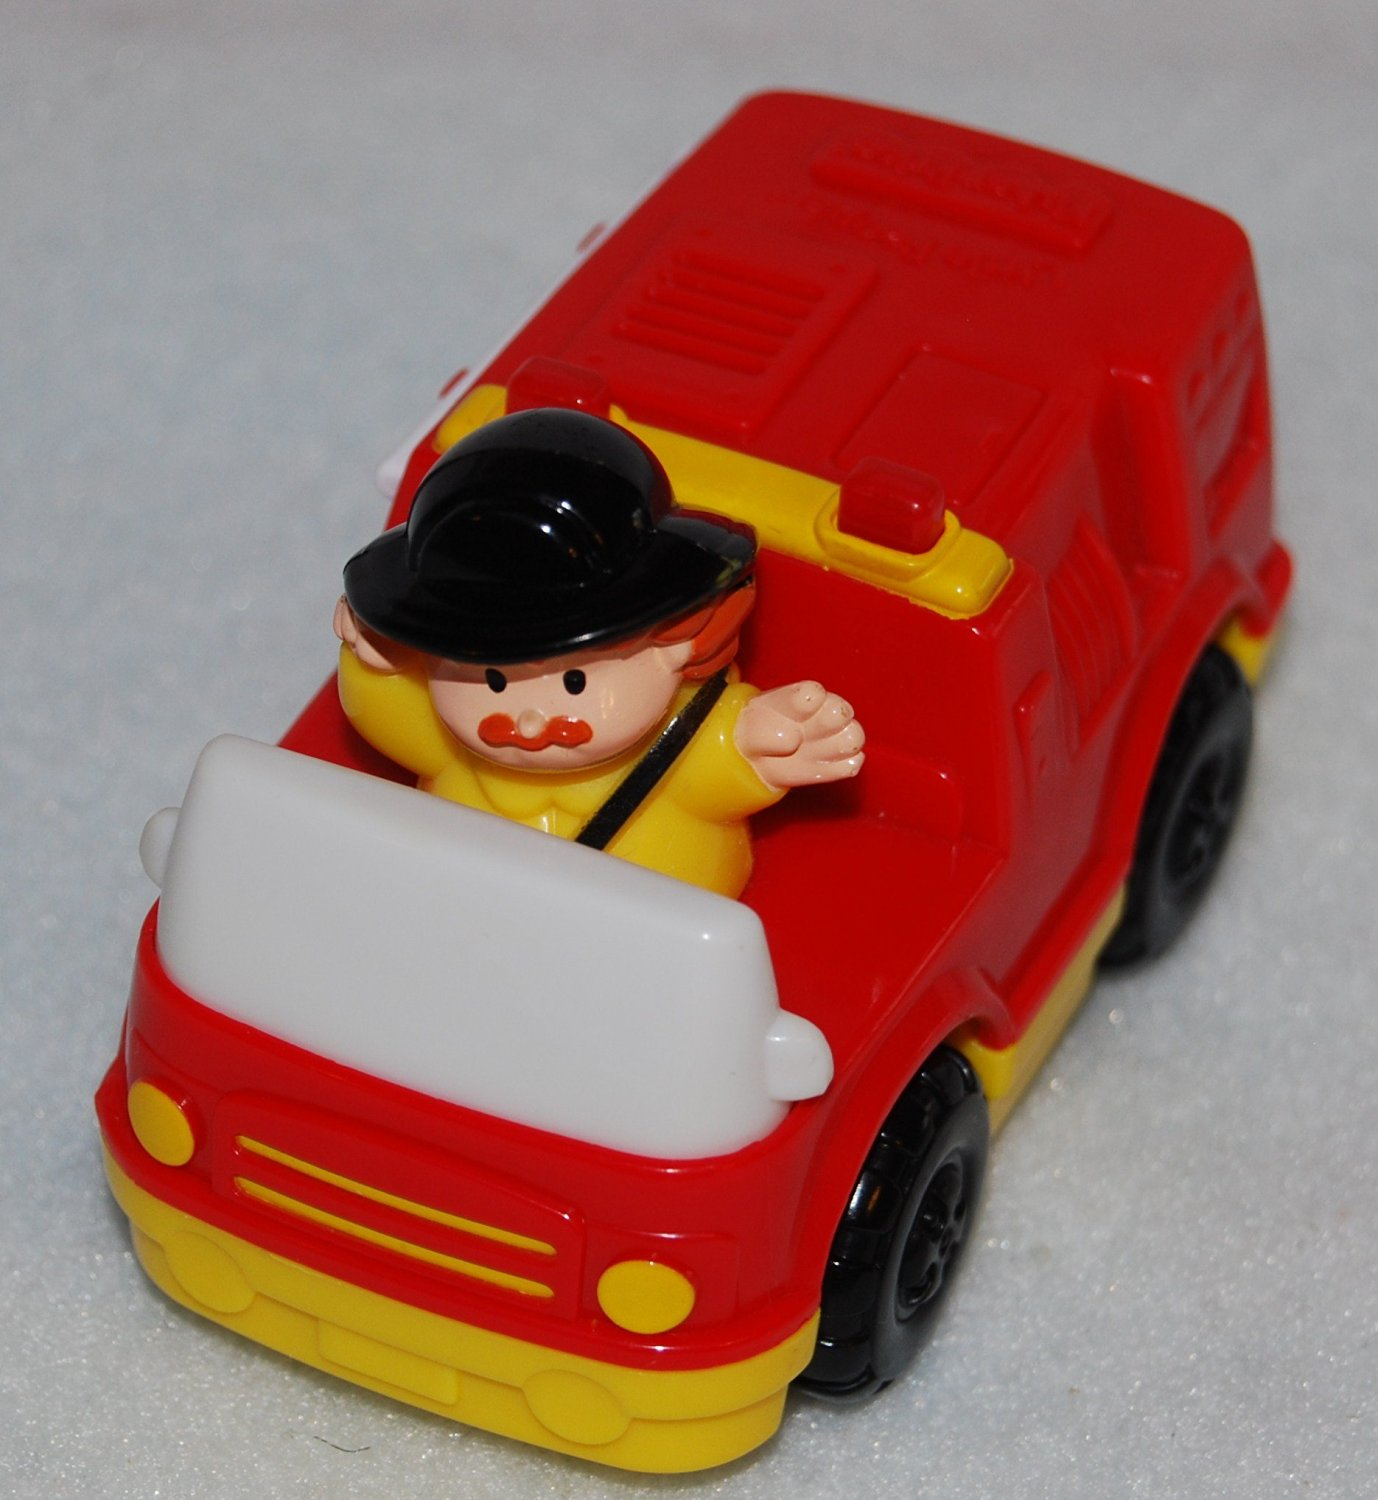 McDonalds Happy Meal 2004 Fisher Price Red Fire Truck with Driver